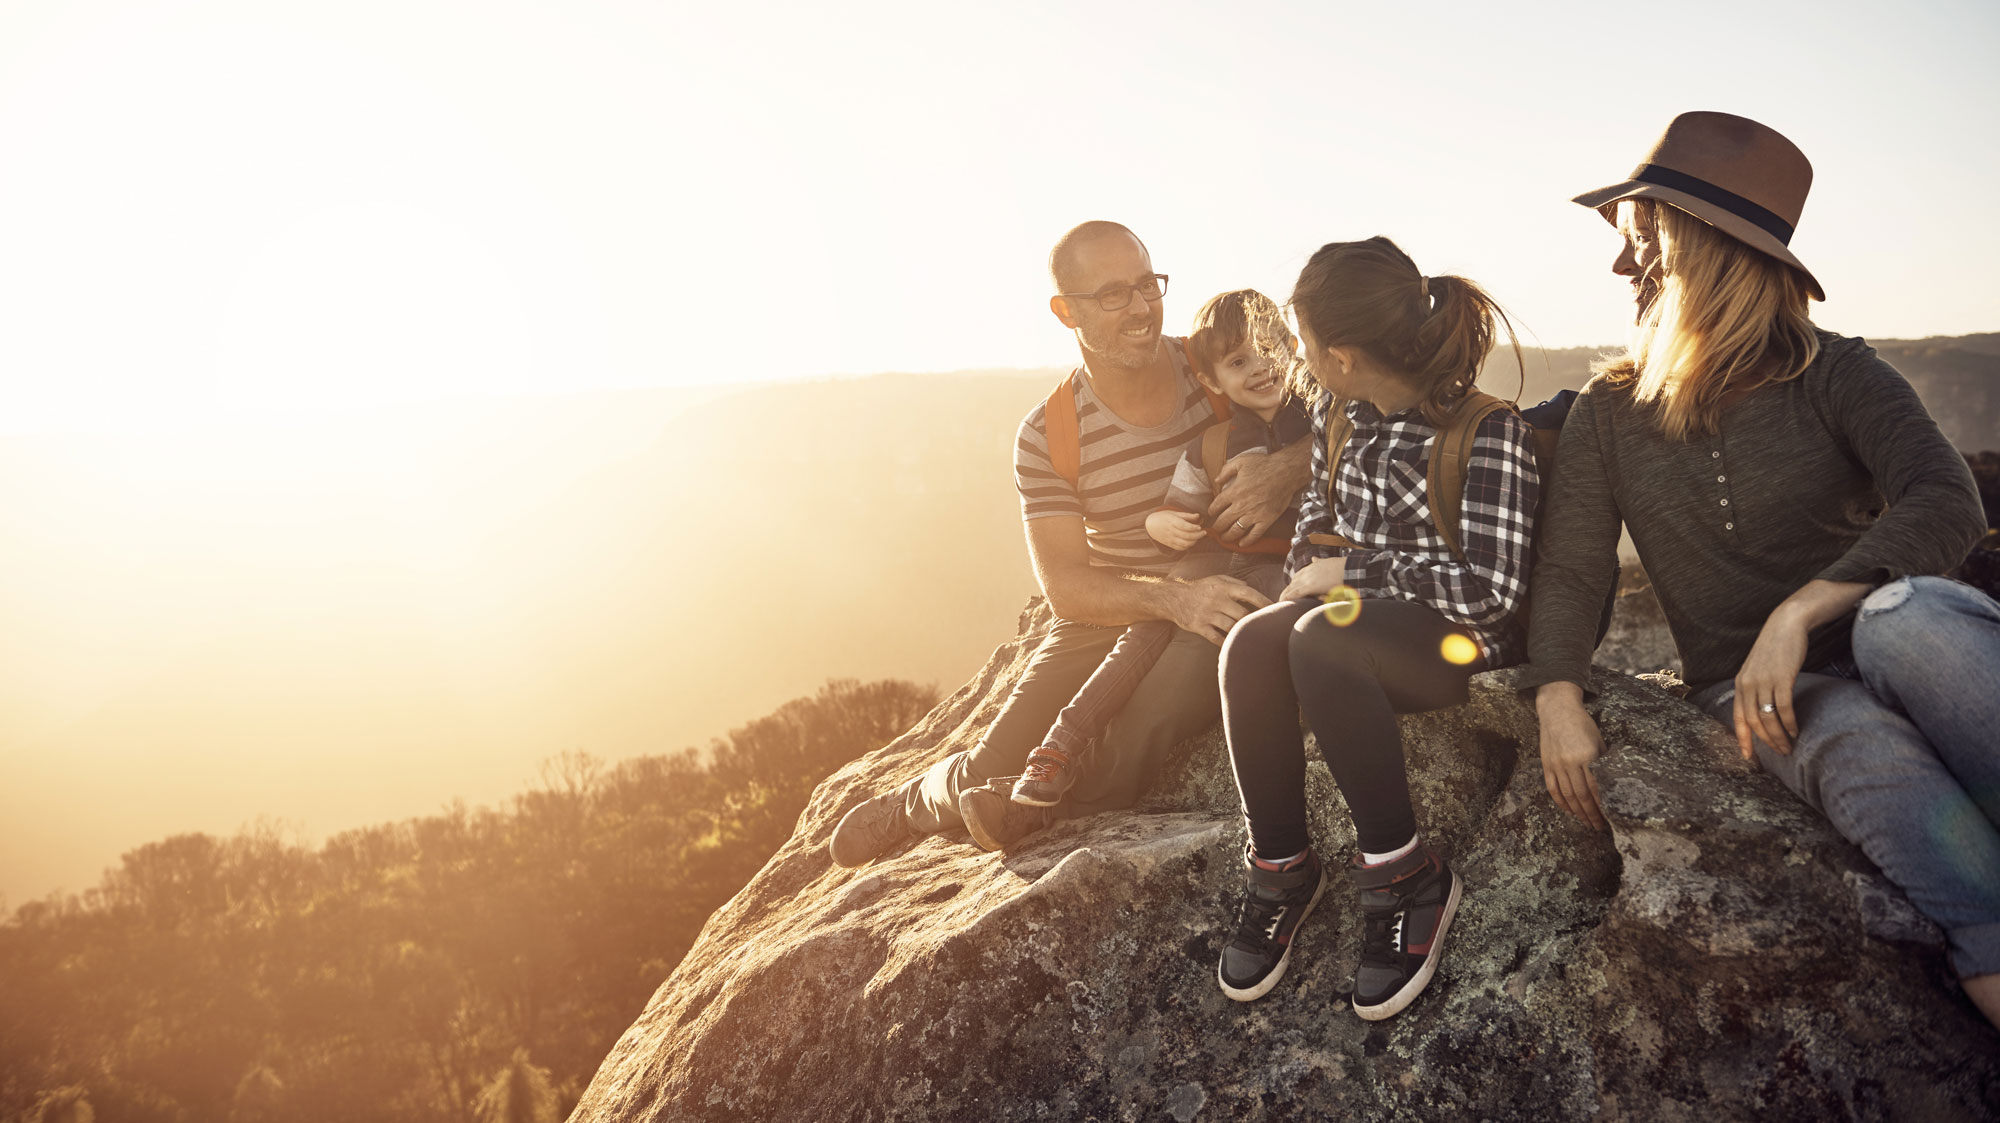 People sitting on a rock